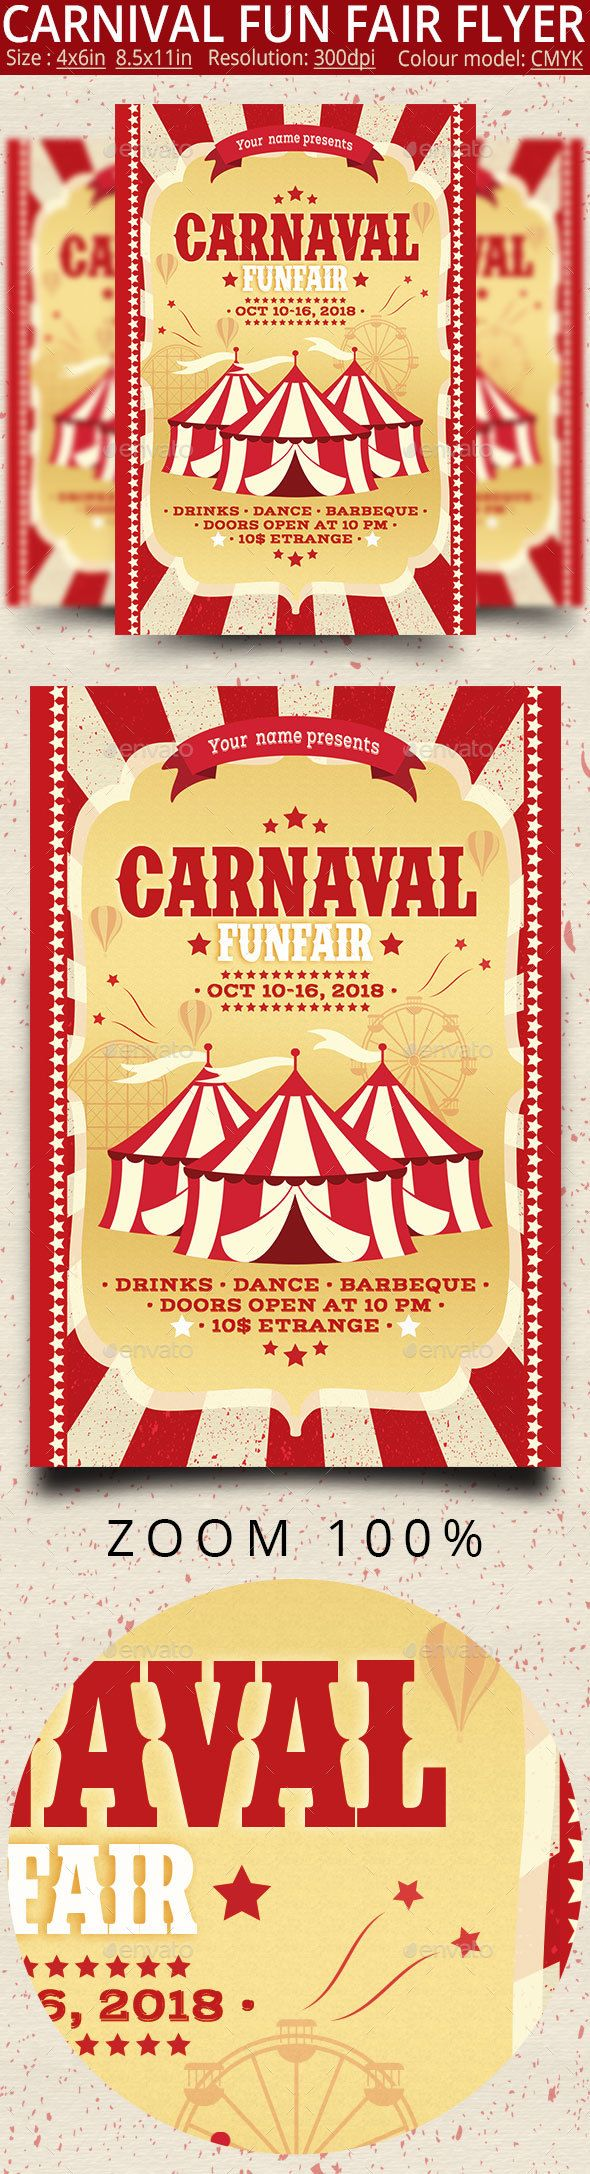 Carnival Fun Fair Flyer Poster Fun Fair Carnival And Flyer Template